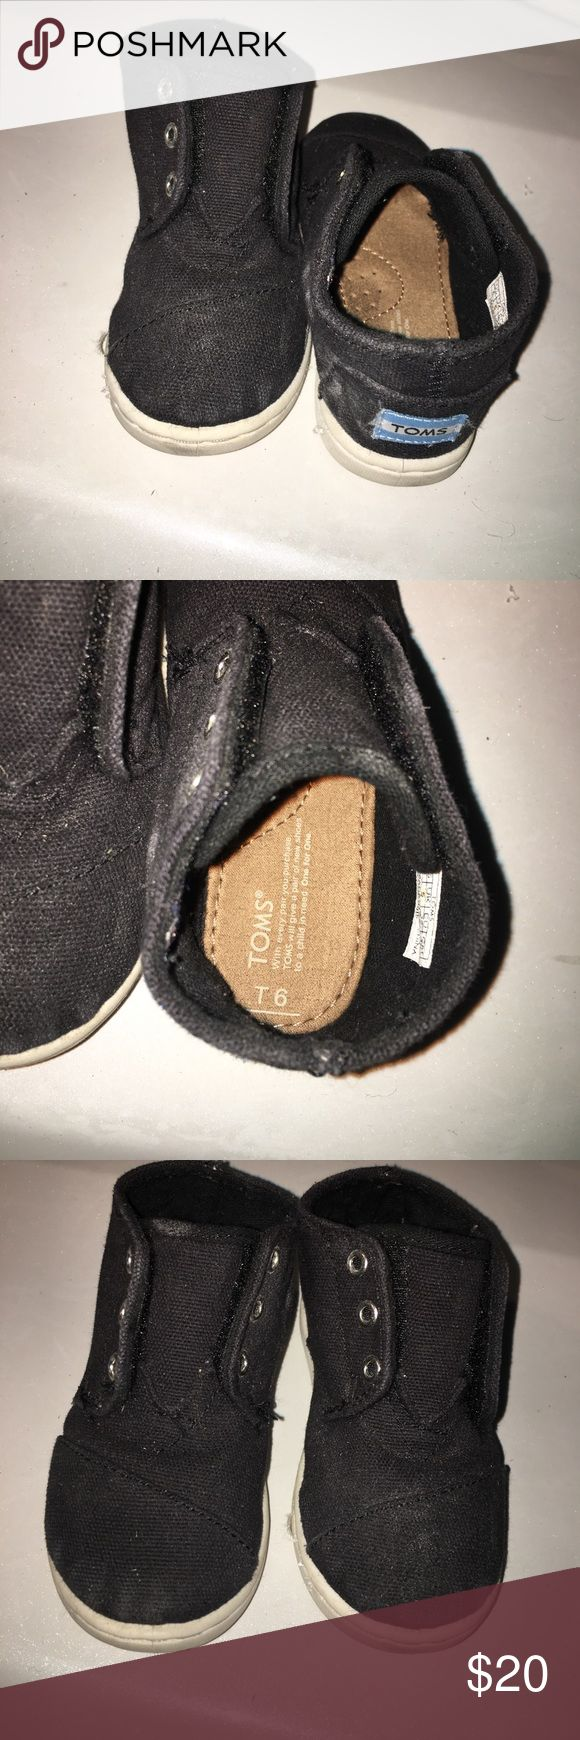 Black kids toms Worn. Clean. No trades TOMS Shoes Sneakers